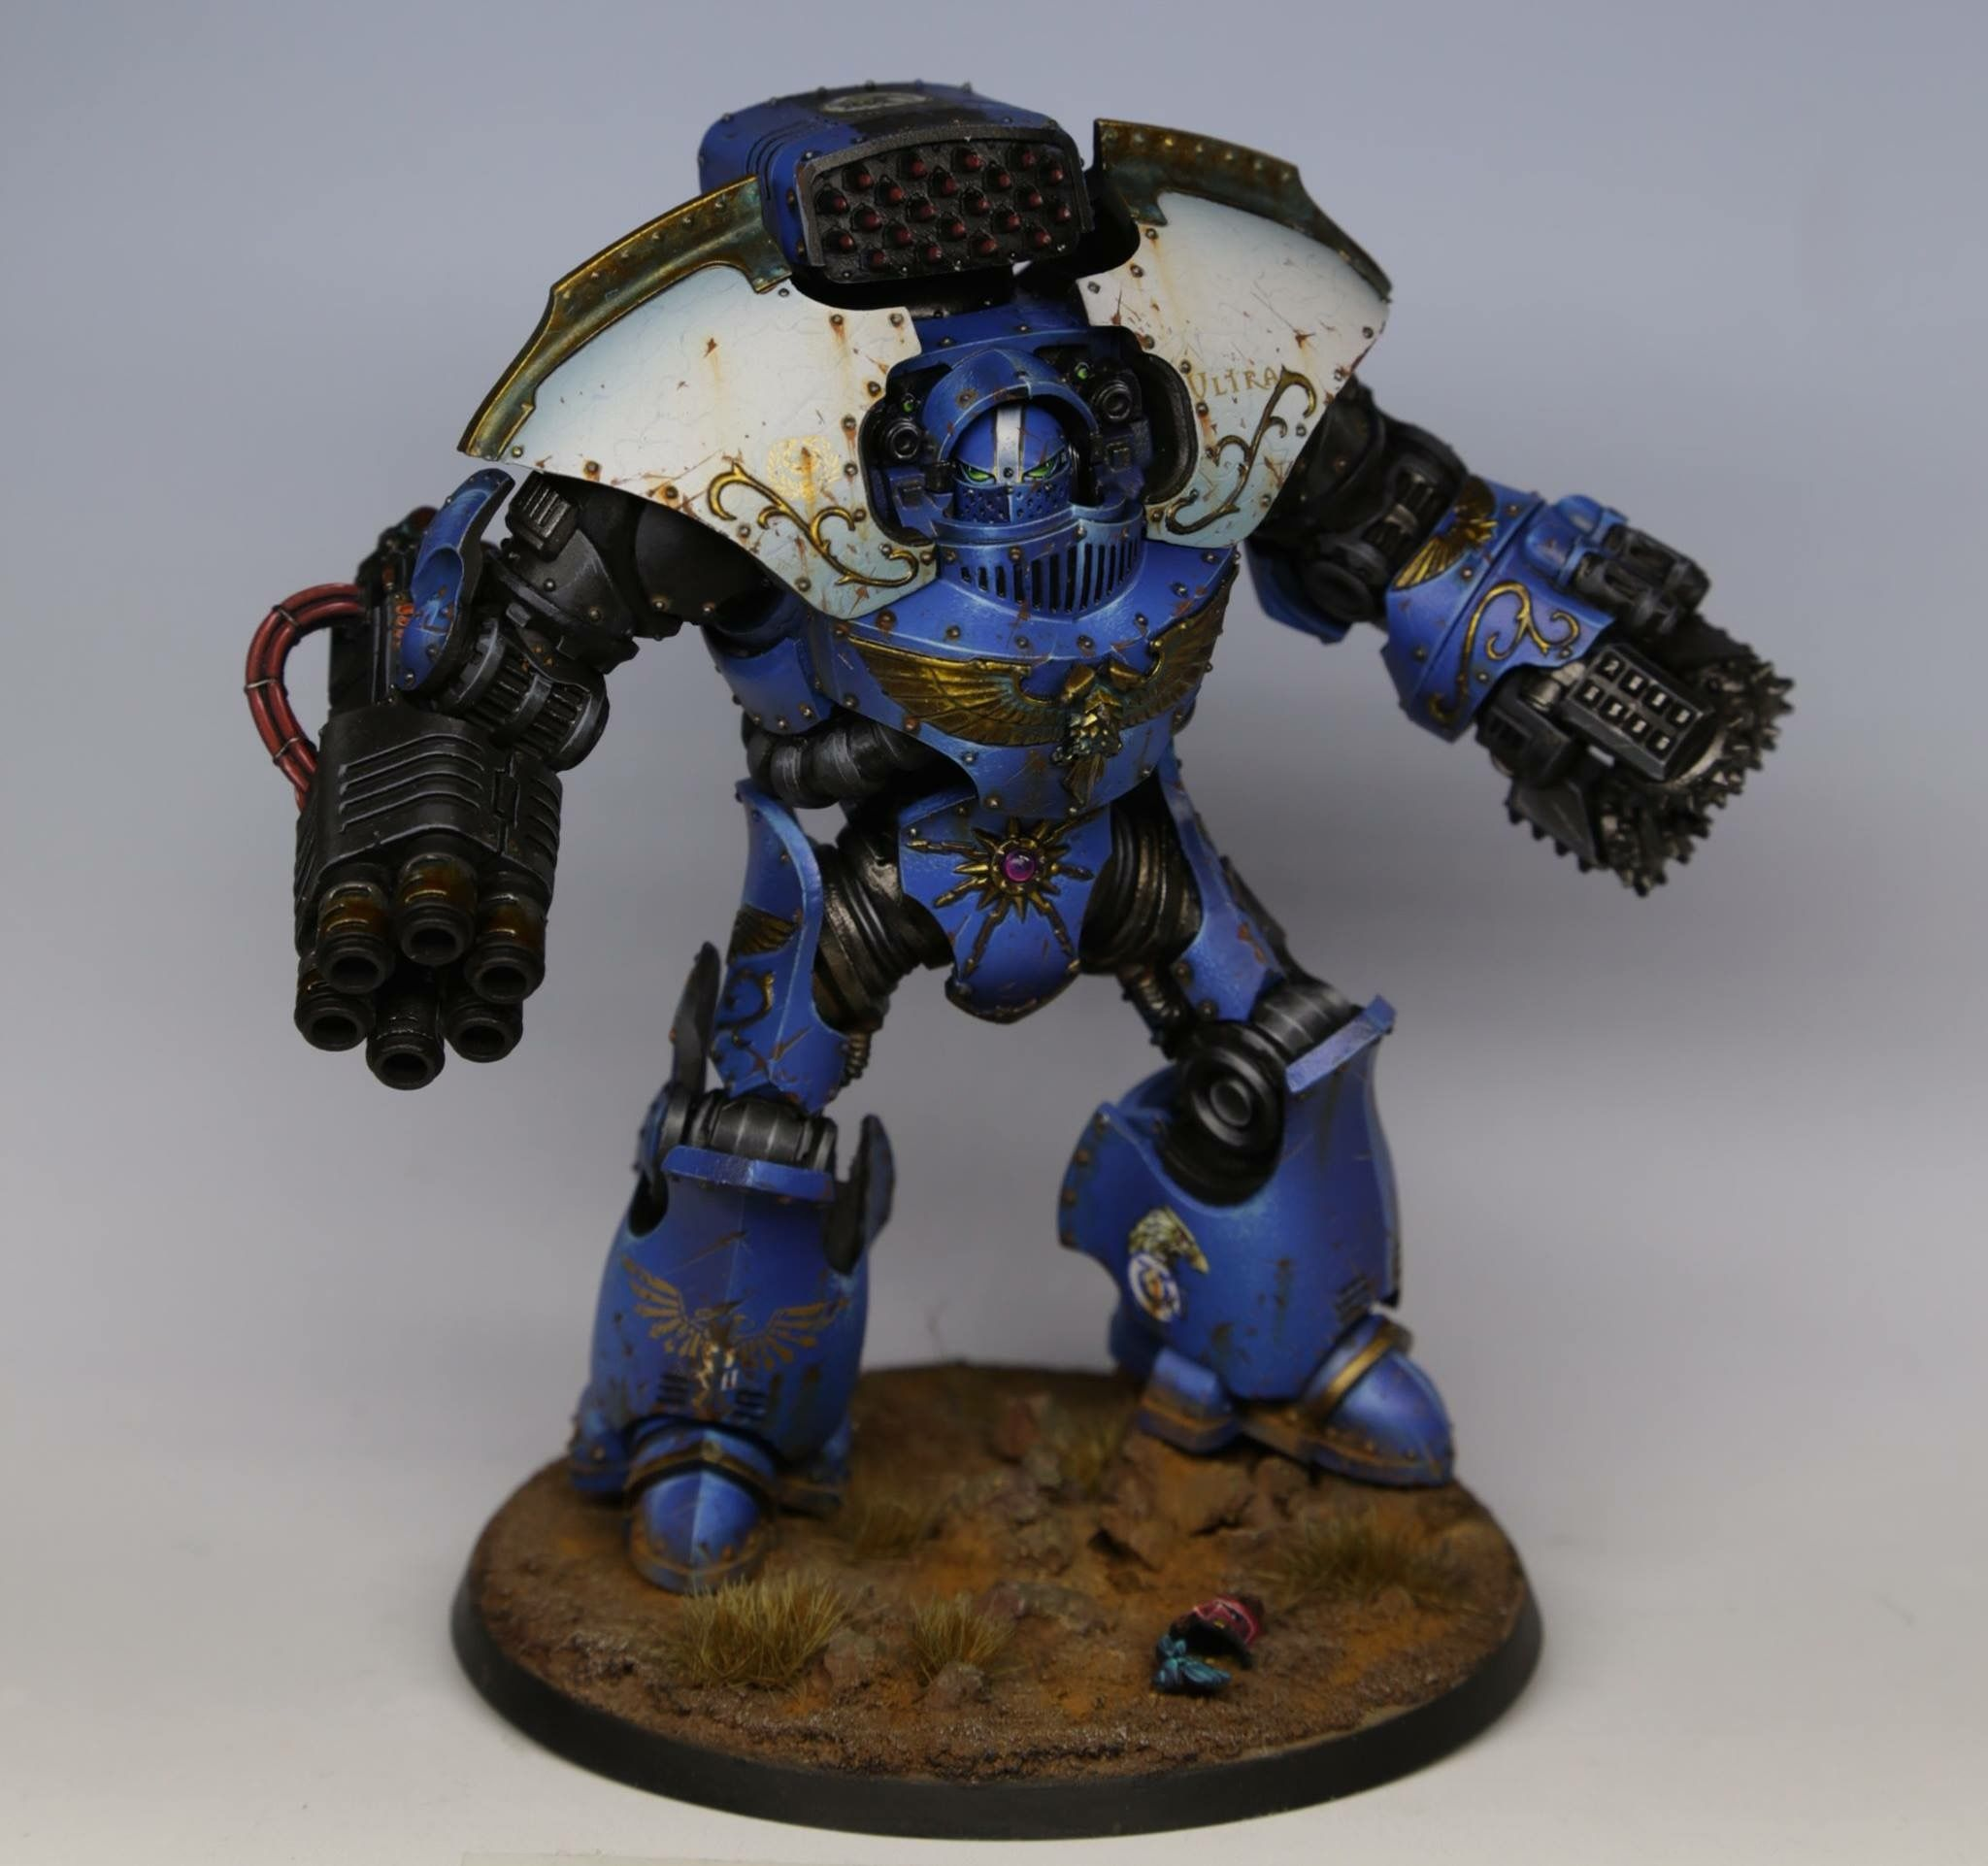 General Warhammer 40k Space Marines: Pin By Thomas Mahony On 30K/40K Miniatures